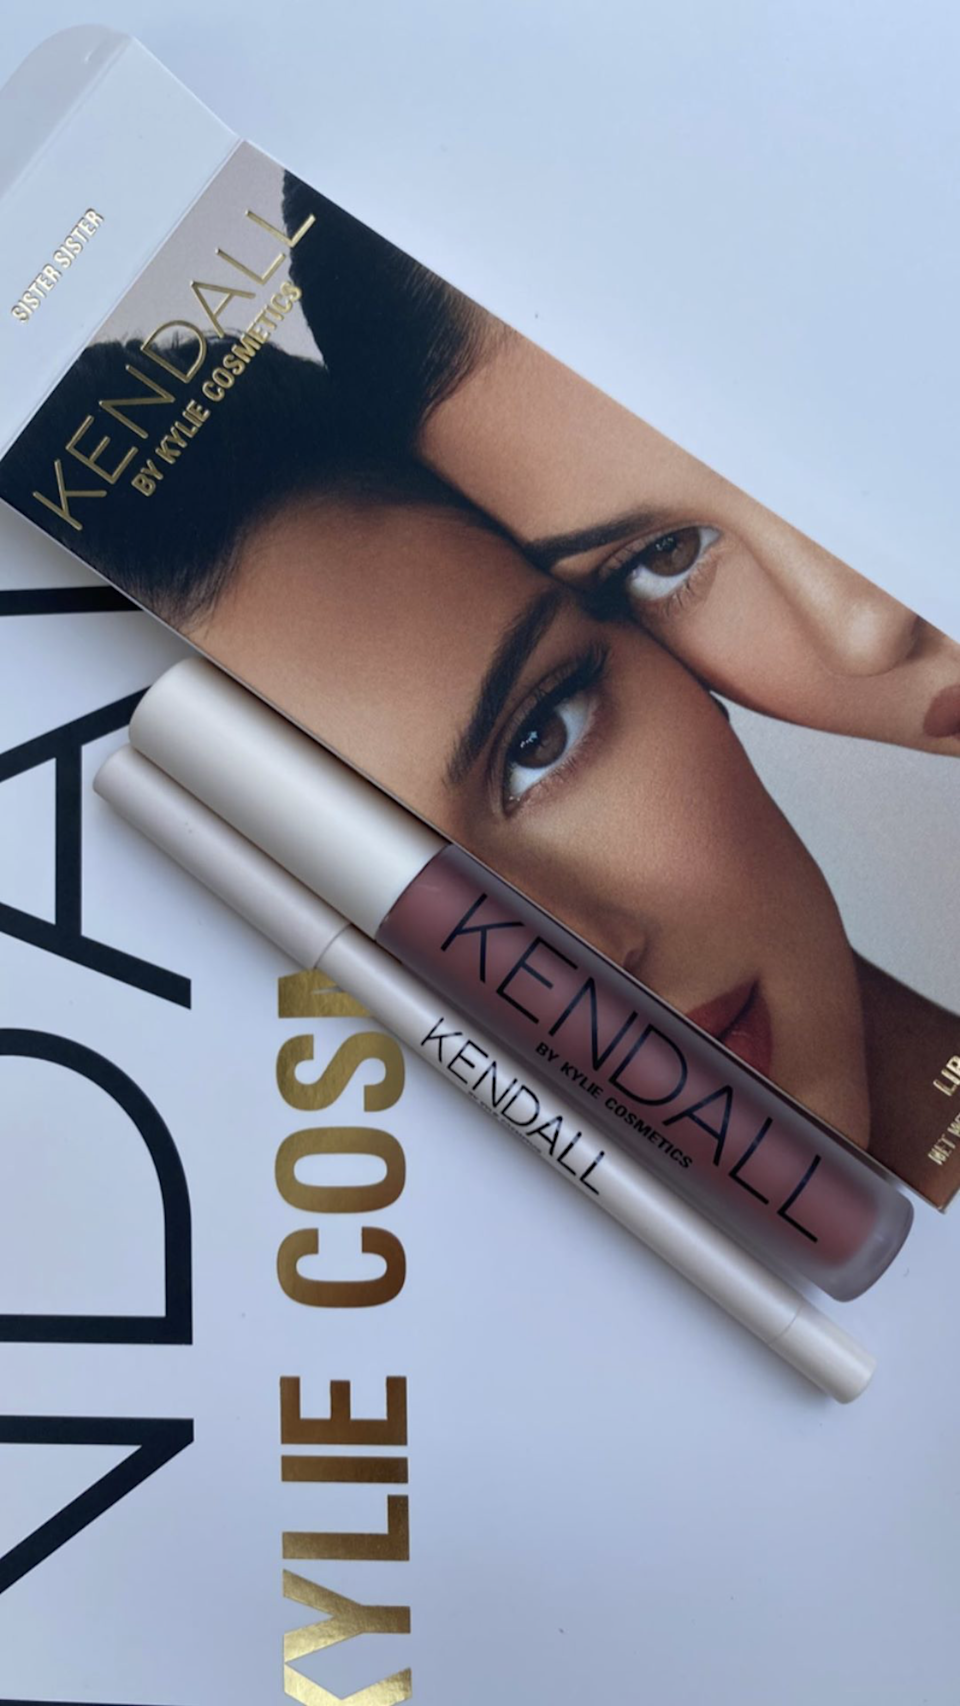 "<cite class=""credit"">Kendall Jenner/Instagram</cite>"